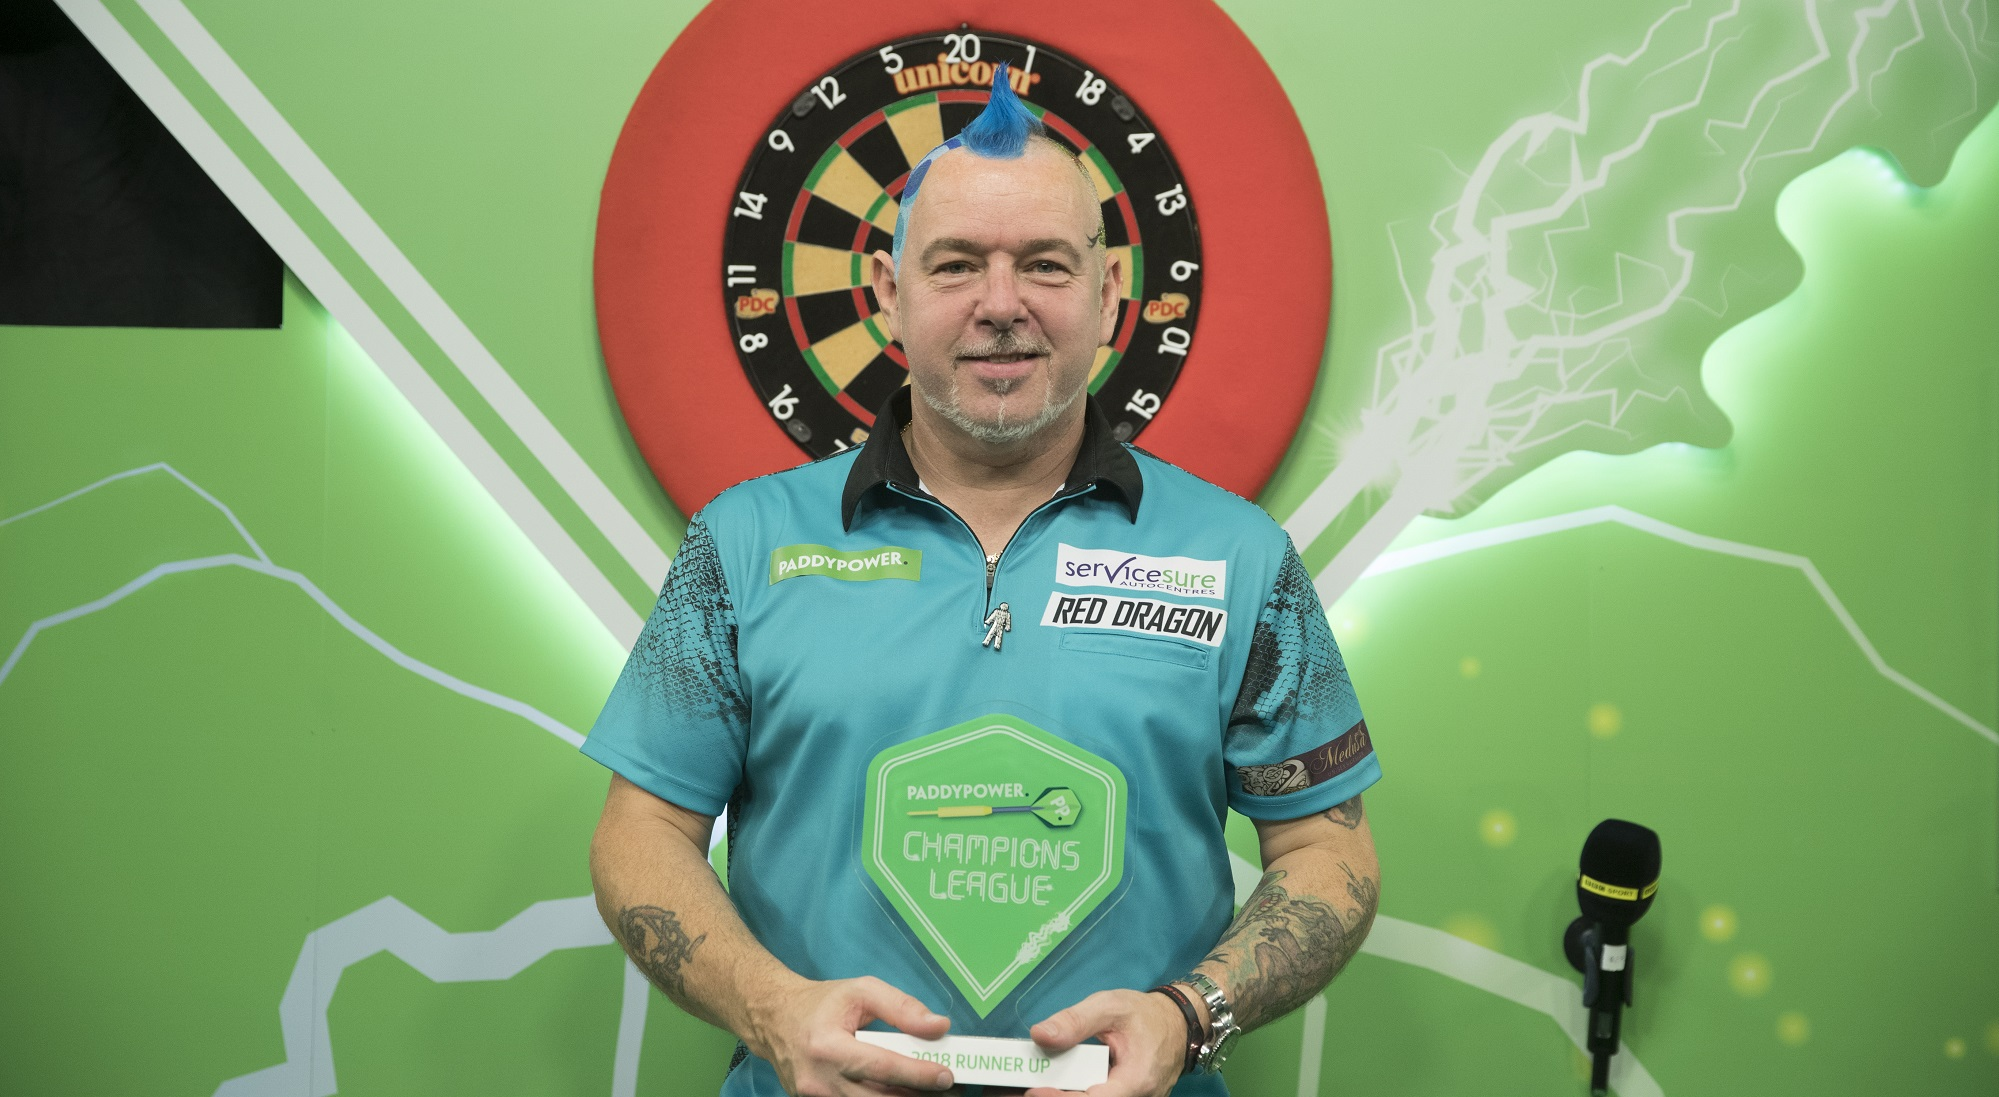 Champions League Spot Secure For Wright Pdc